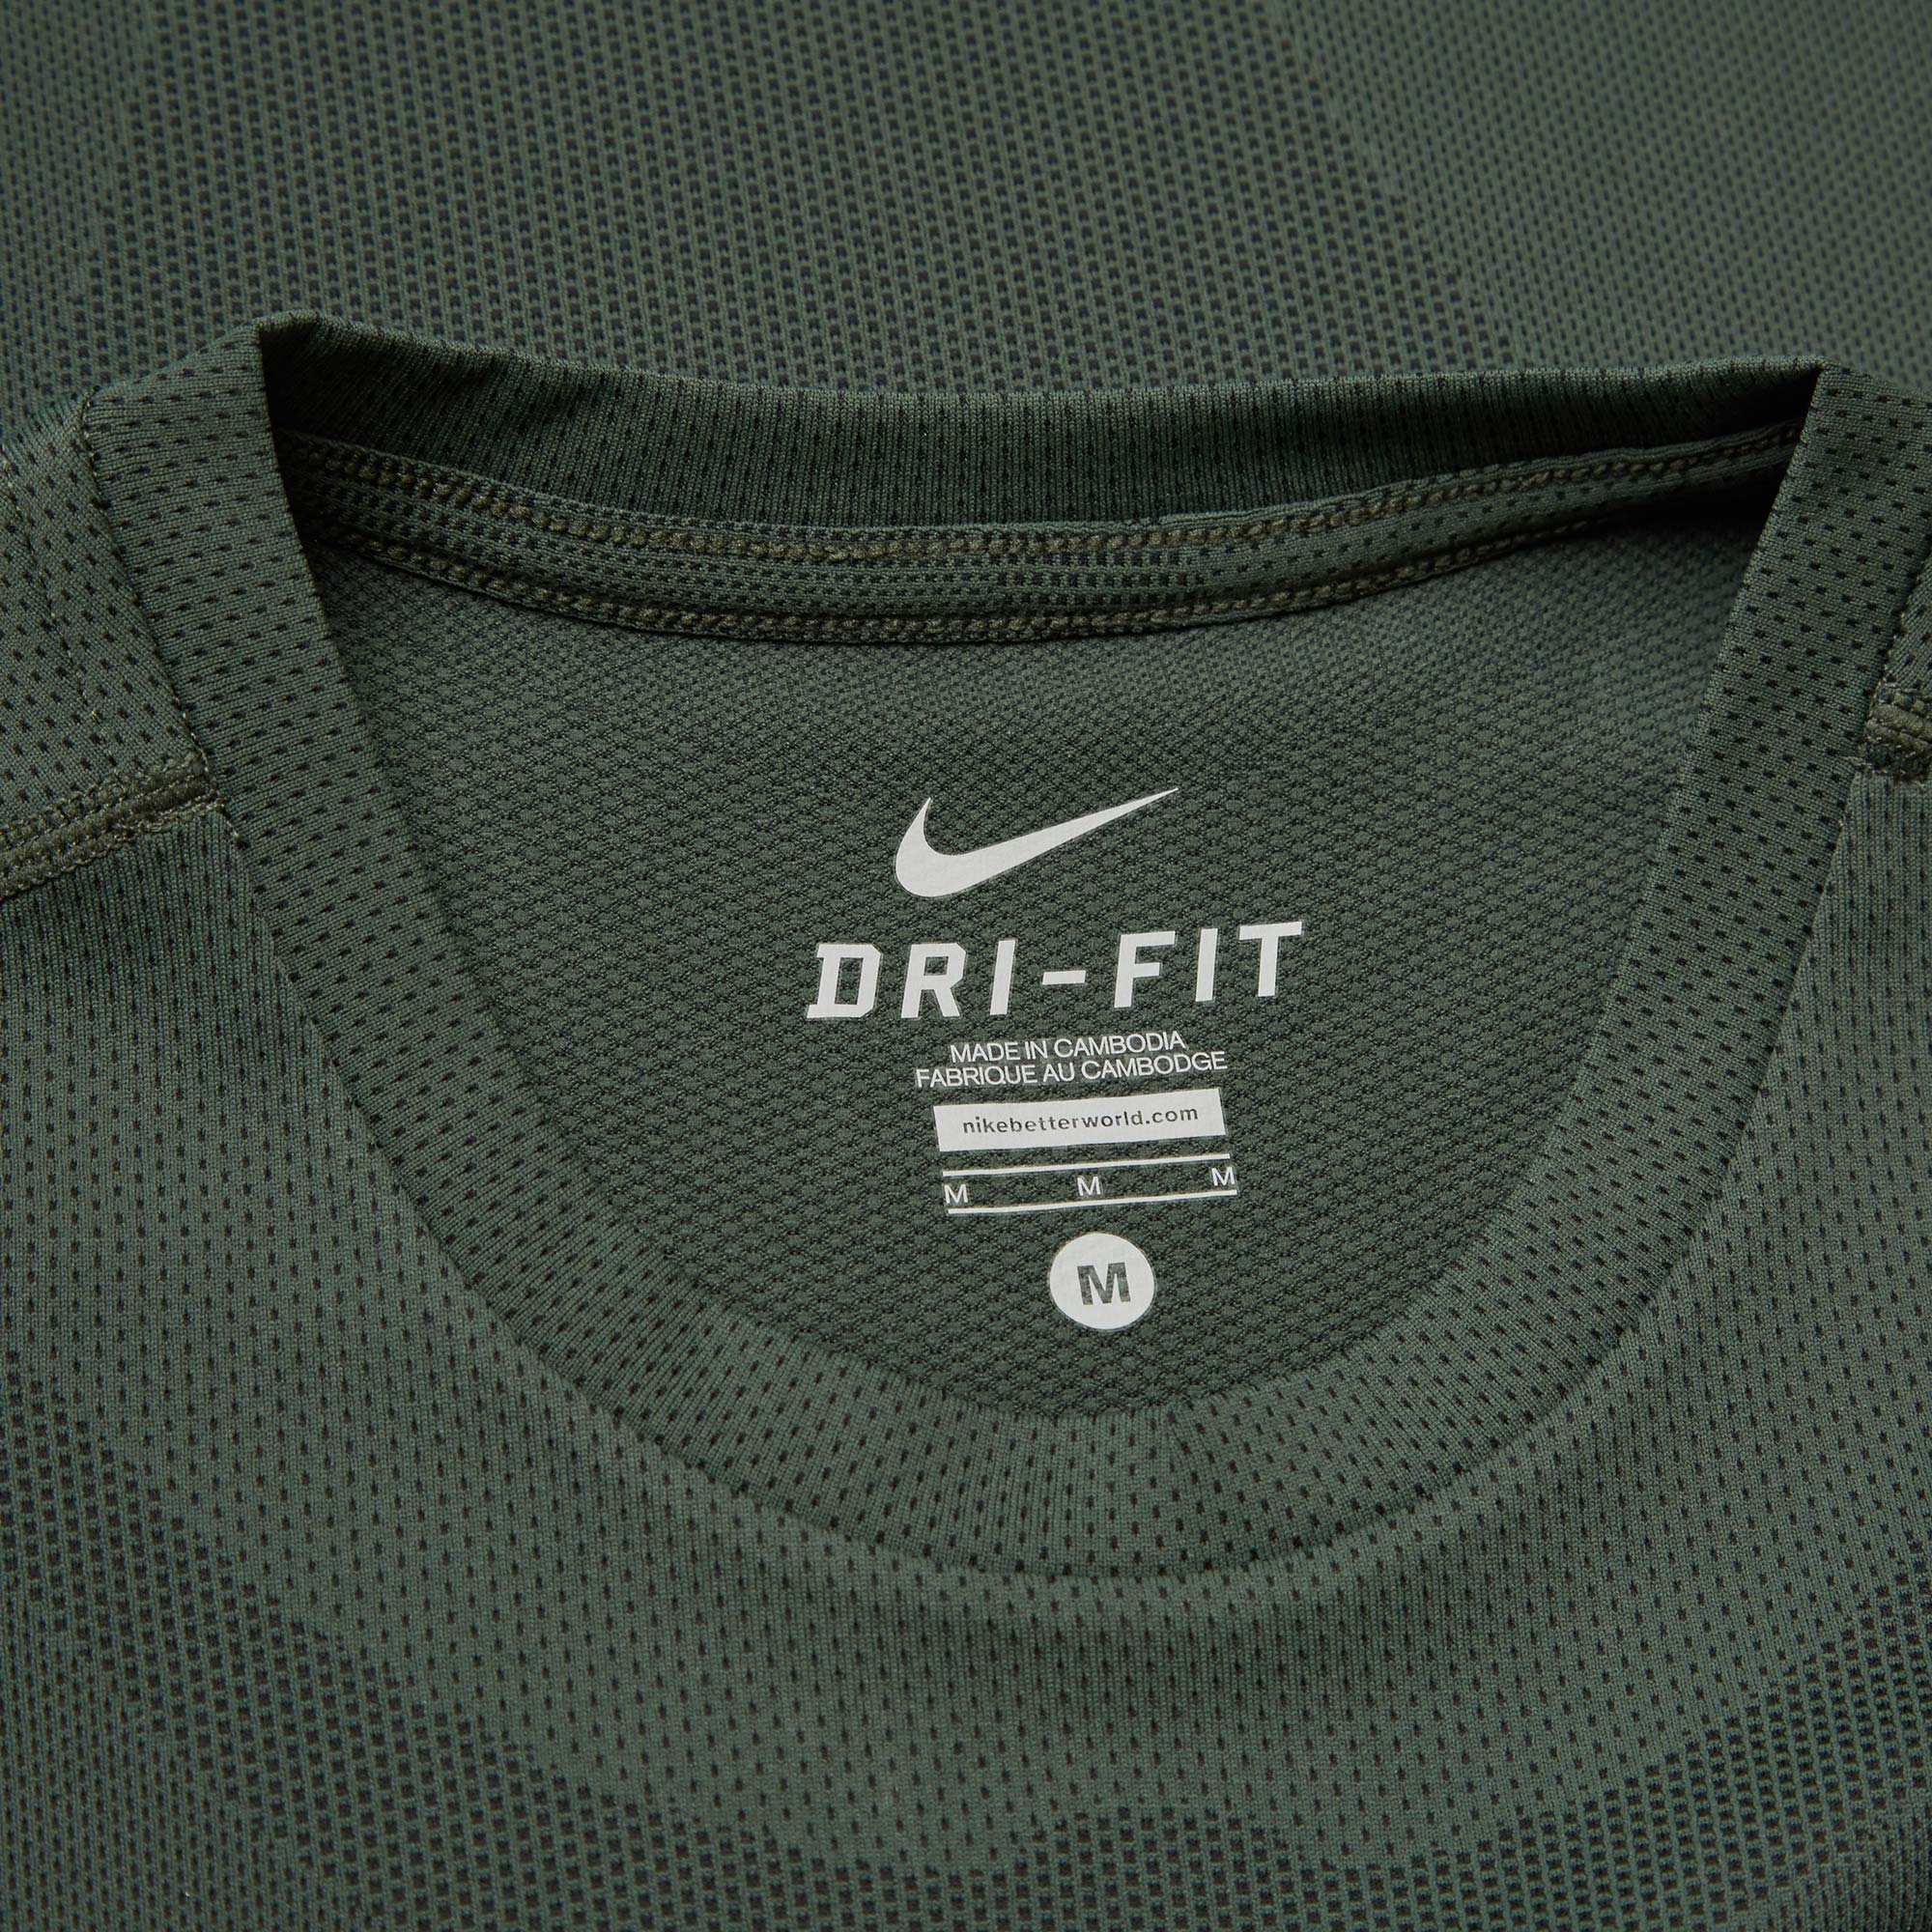 100% authentic ab9ca 5ee40 Nike x Undercover Gyakusou Dri-Fit Sweat Map Top Grove Green   Black   END.